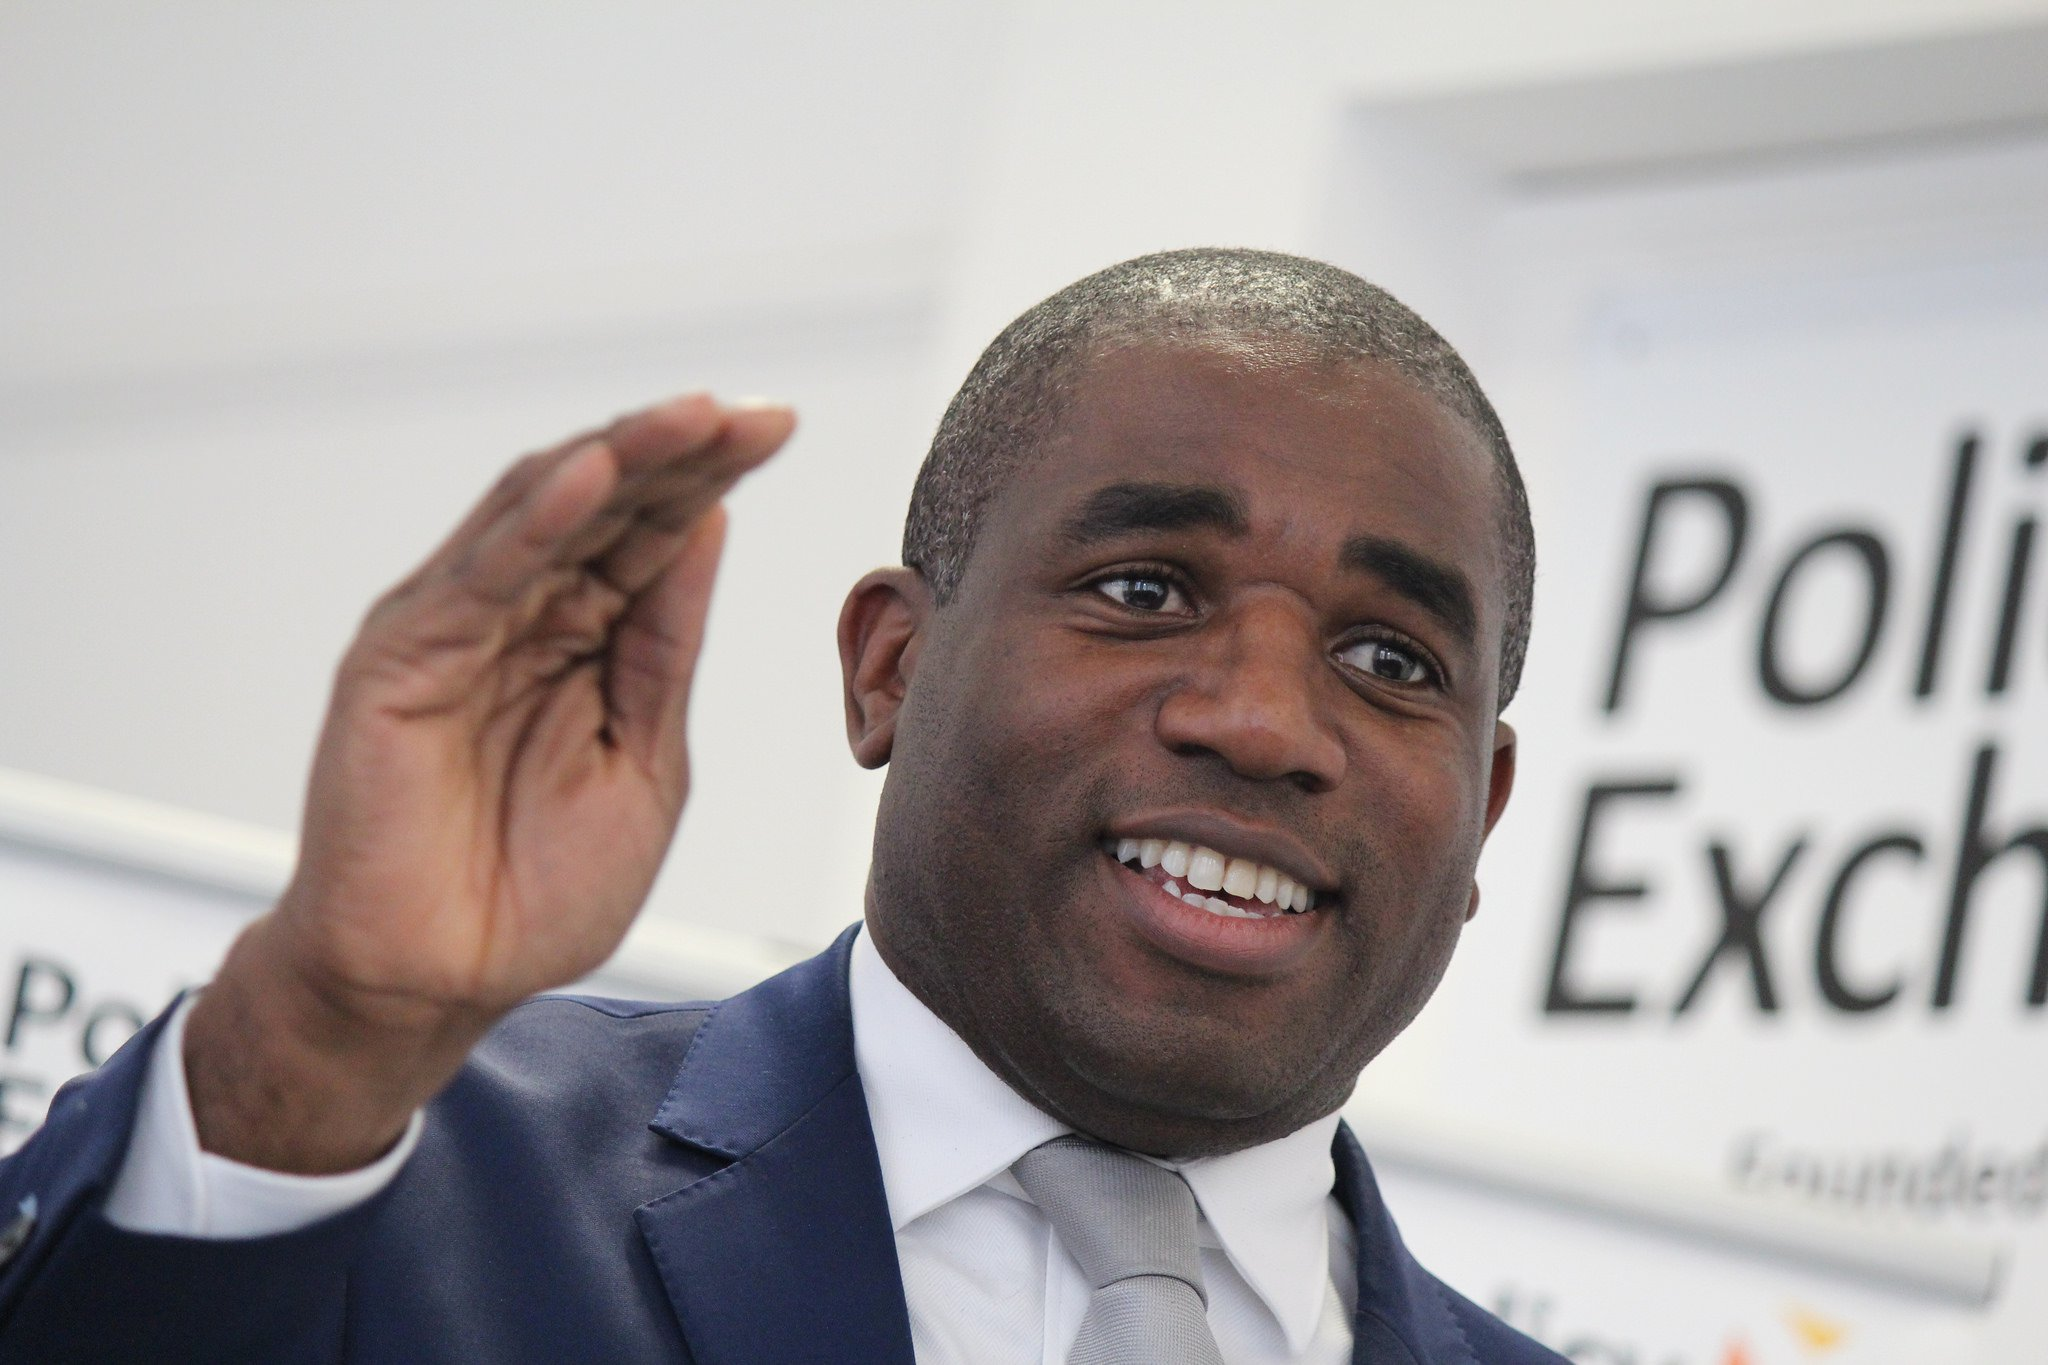 David Lammy MP_ Flickr